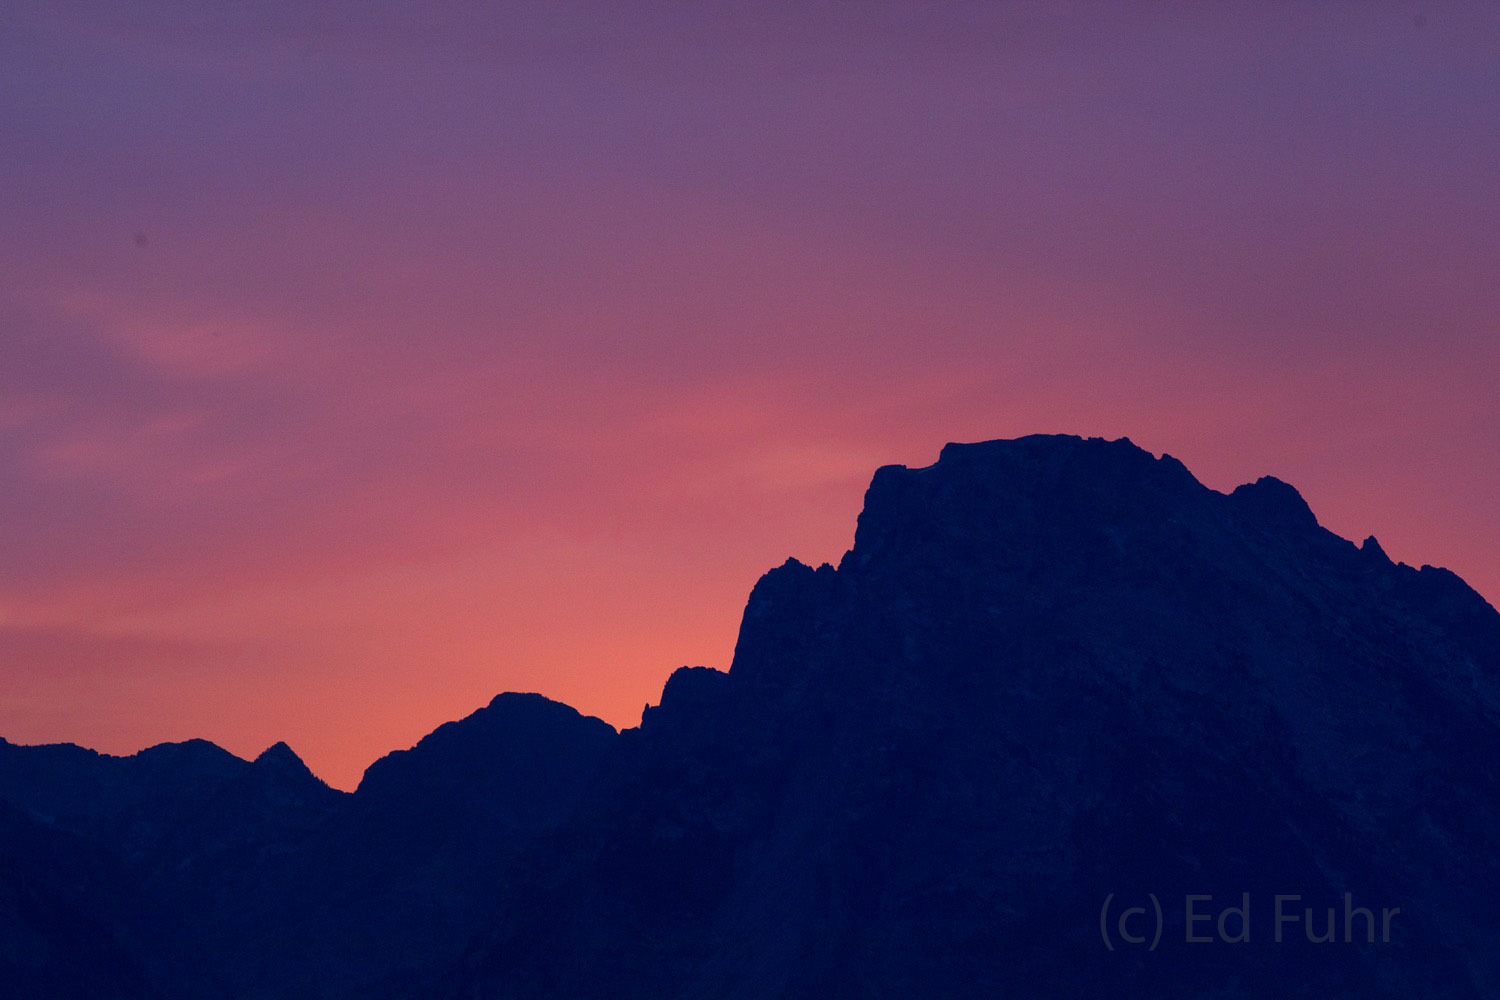 Mount Moran and the northern flank of the Teton range are silhouetted against a colorful evening sky.